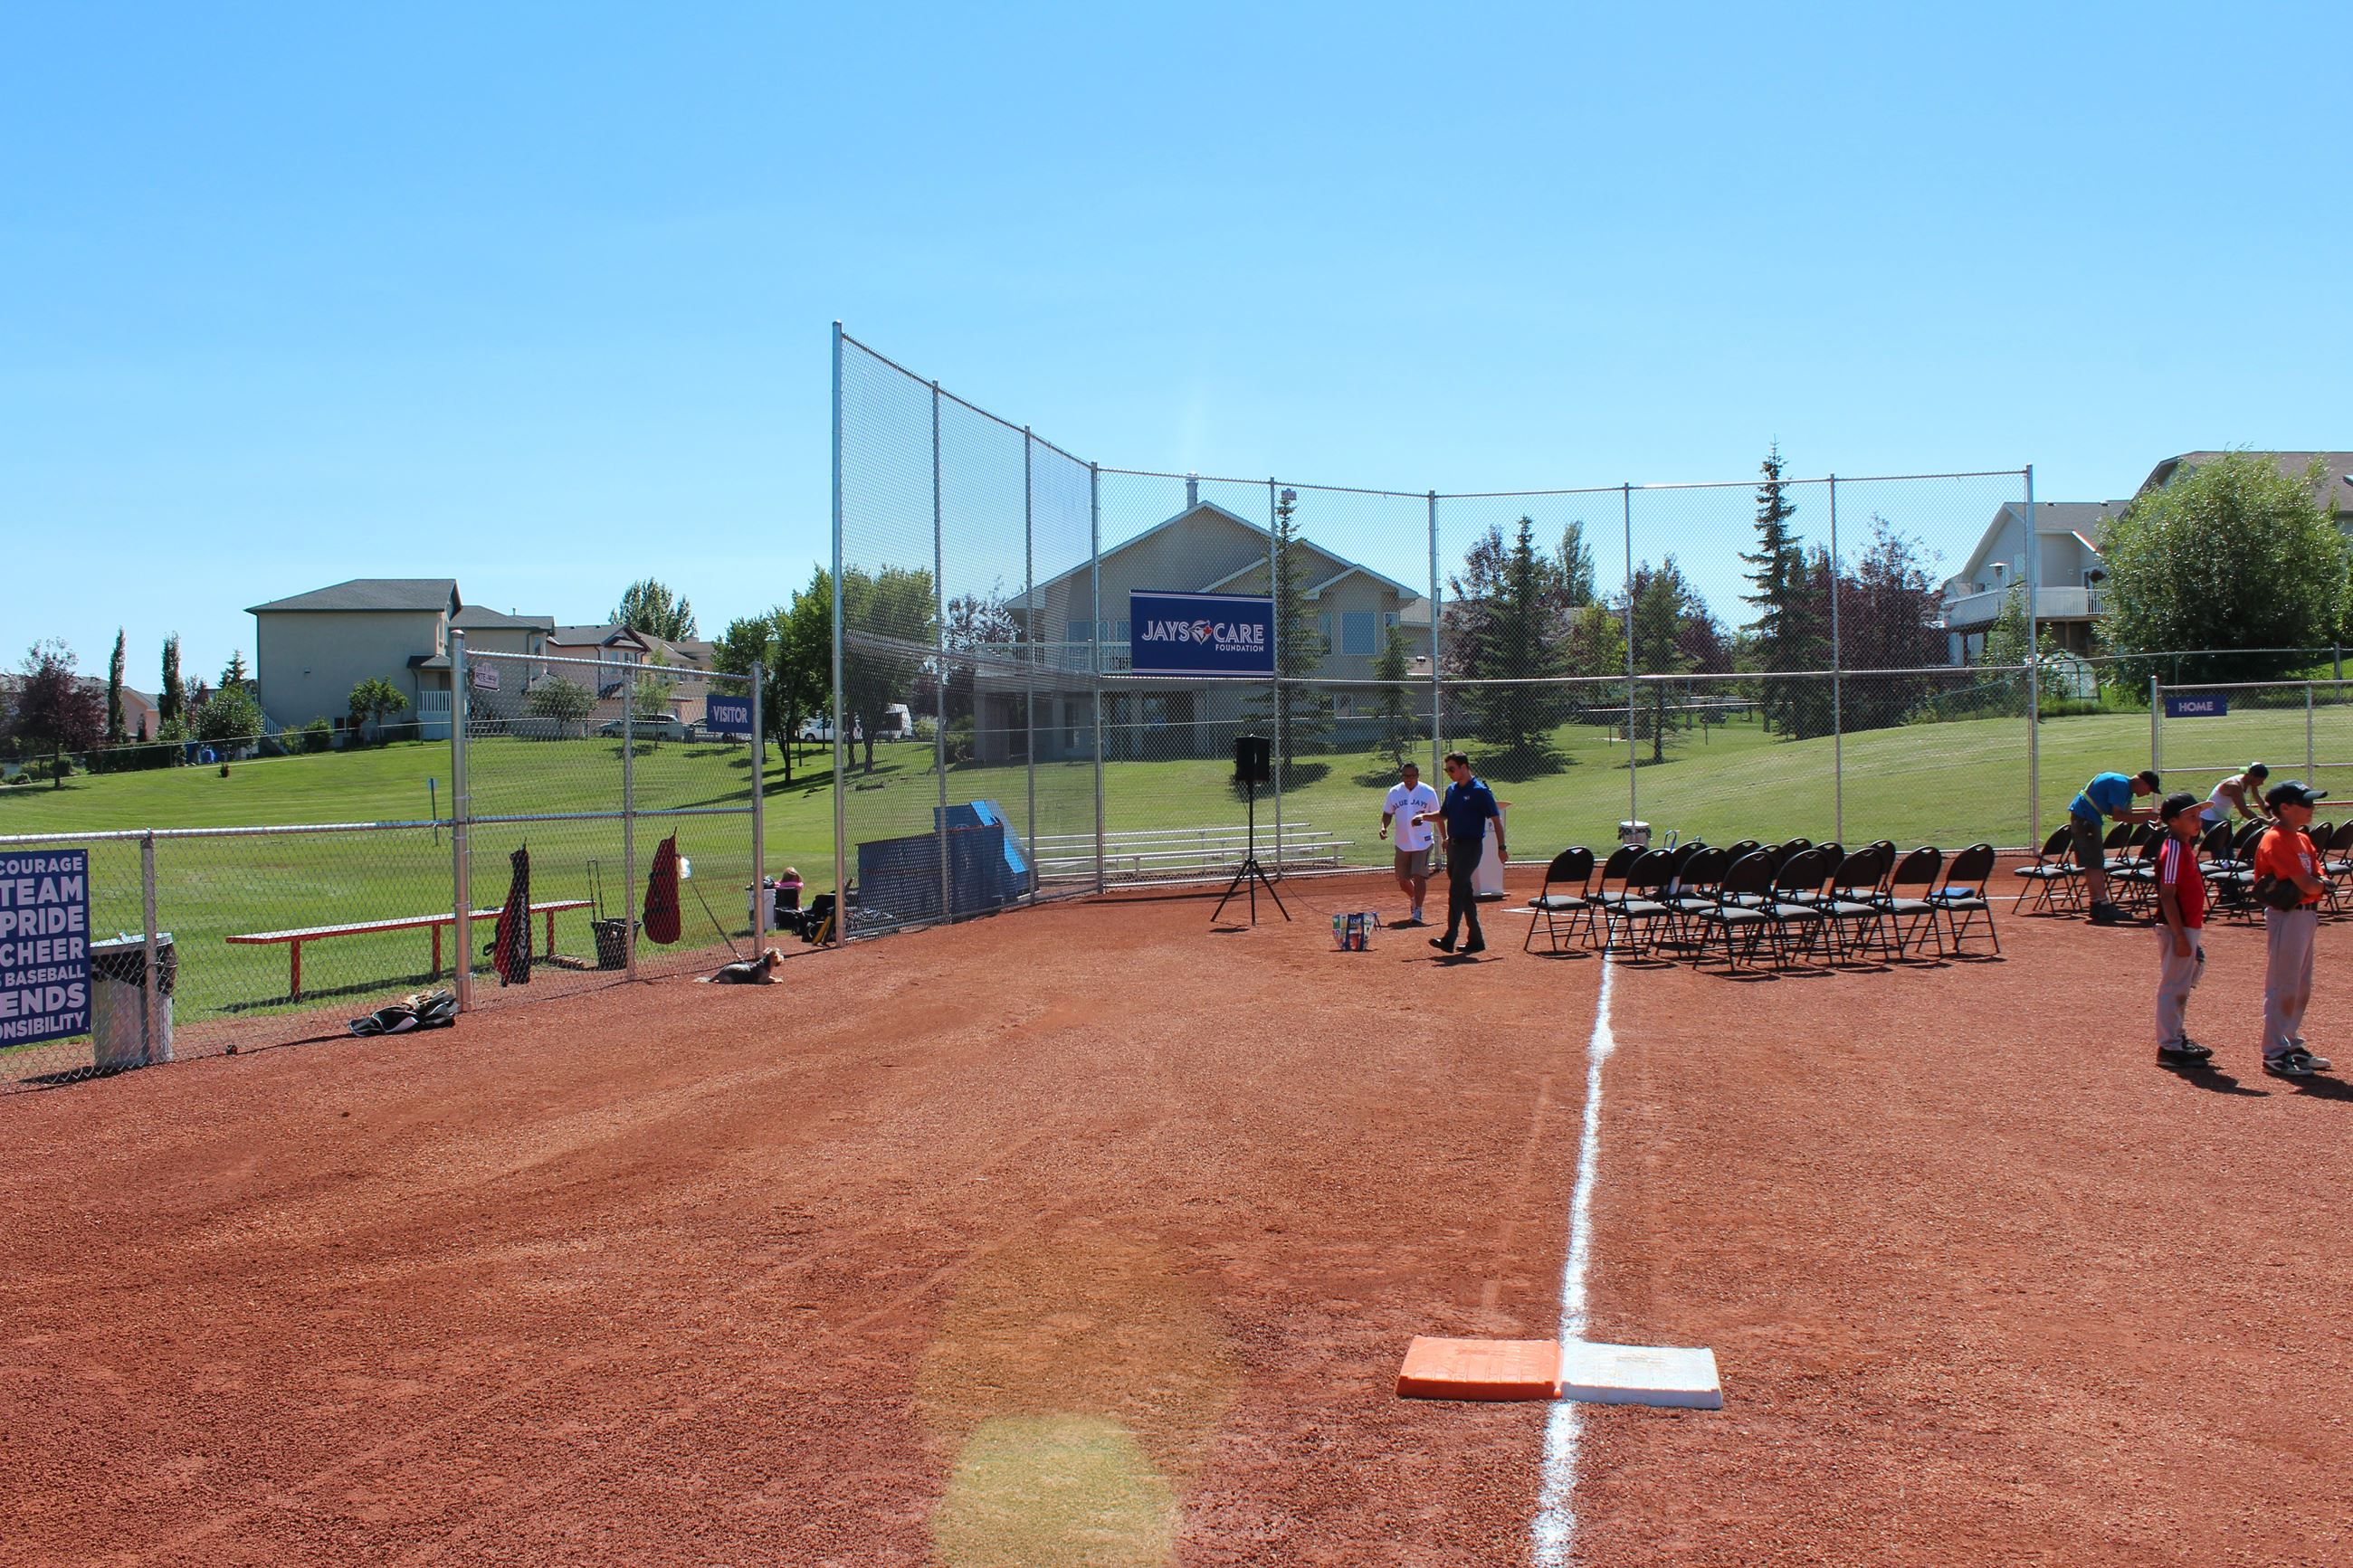 Jays Care Foundation Field